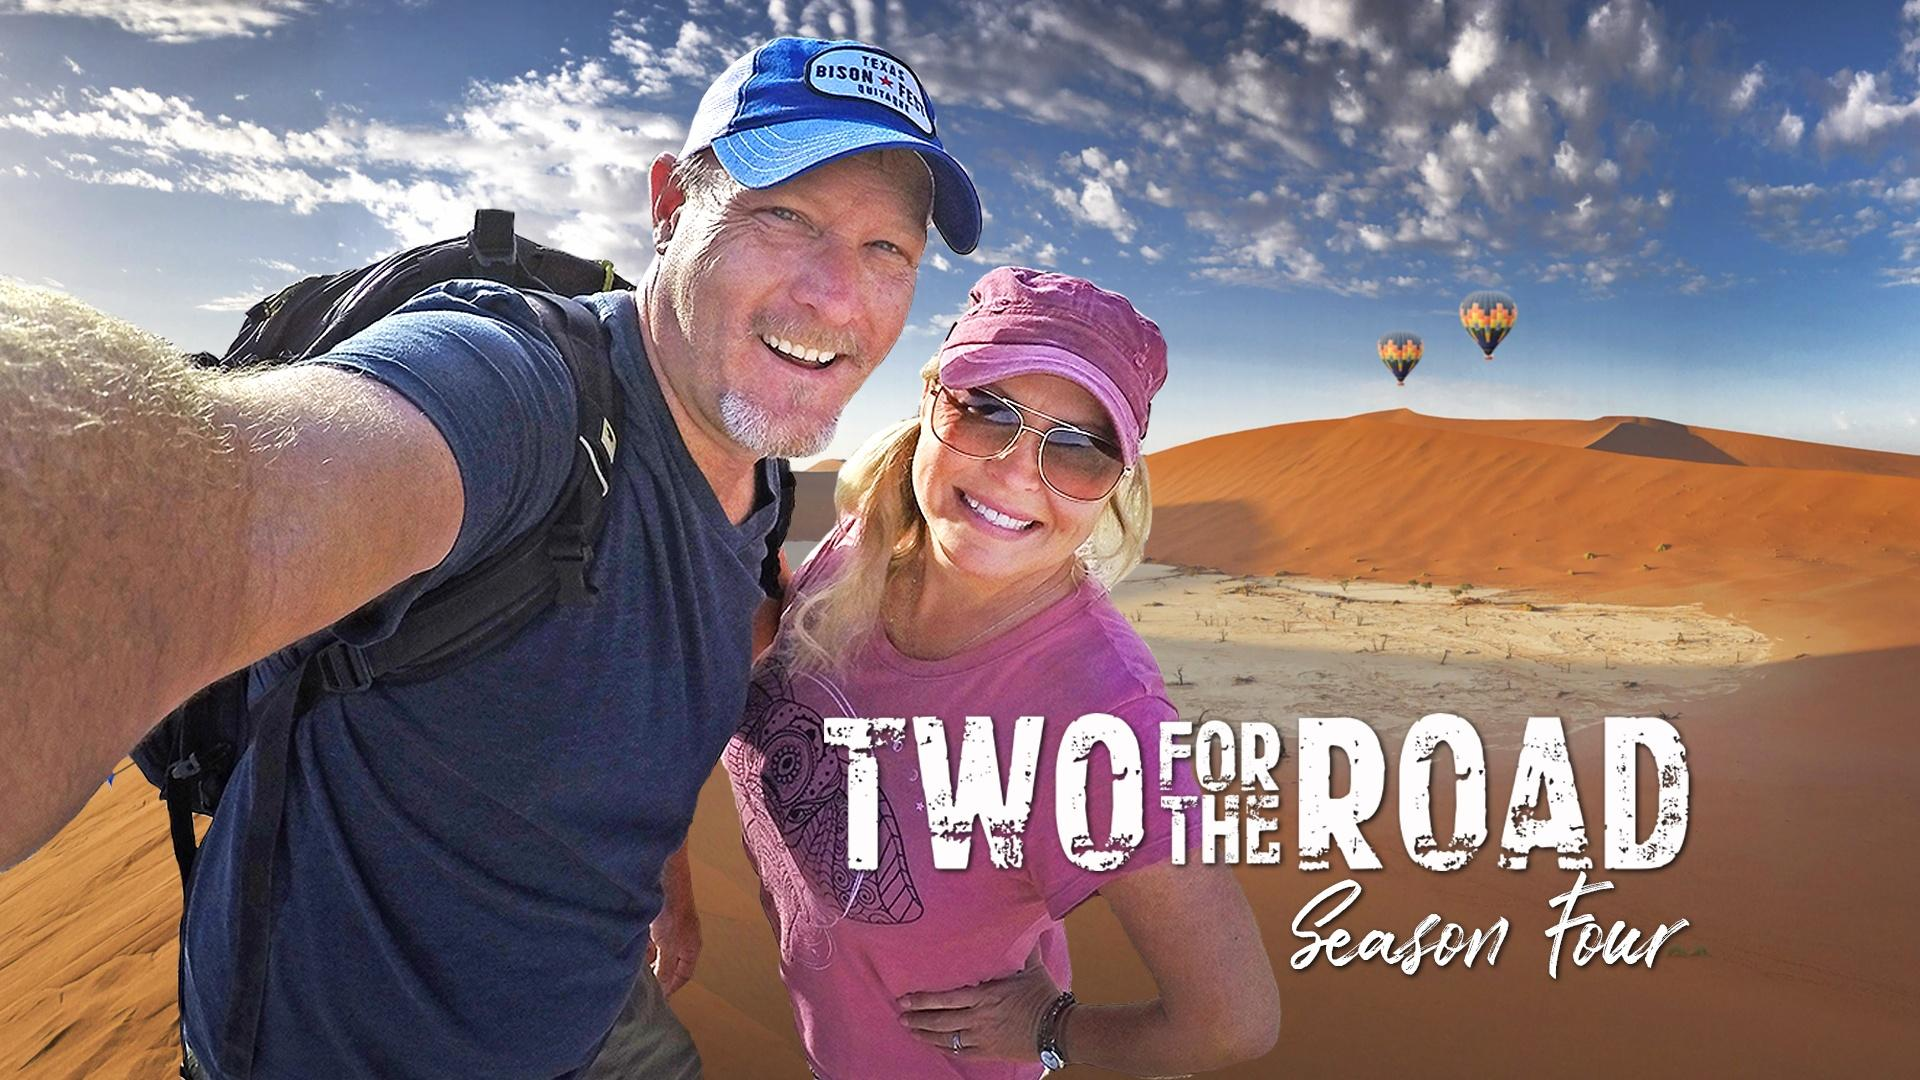 Nik and Dusty Green stand in front of sand dunes with the Two for the Road logo in front of them.